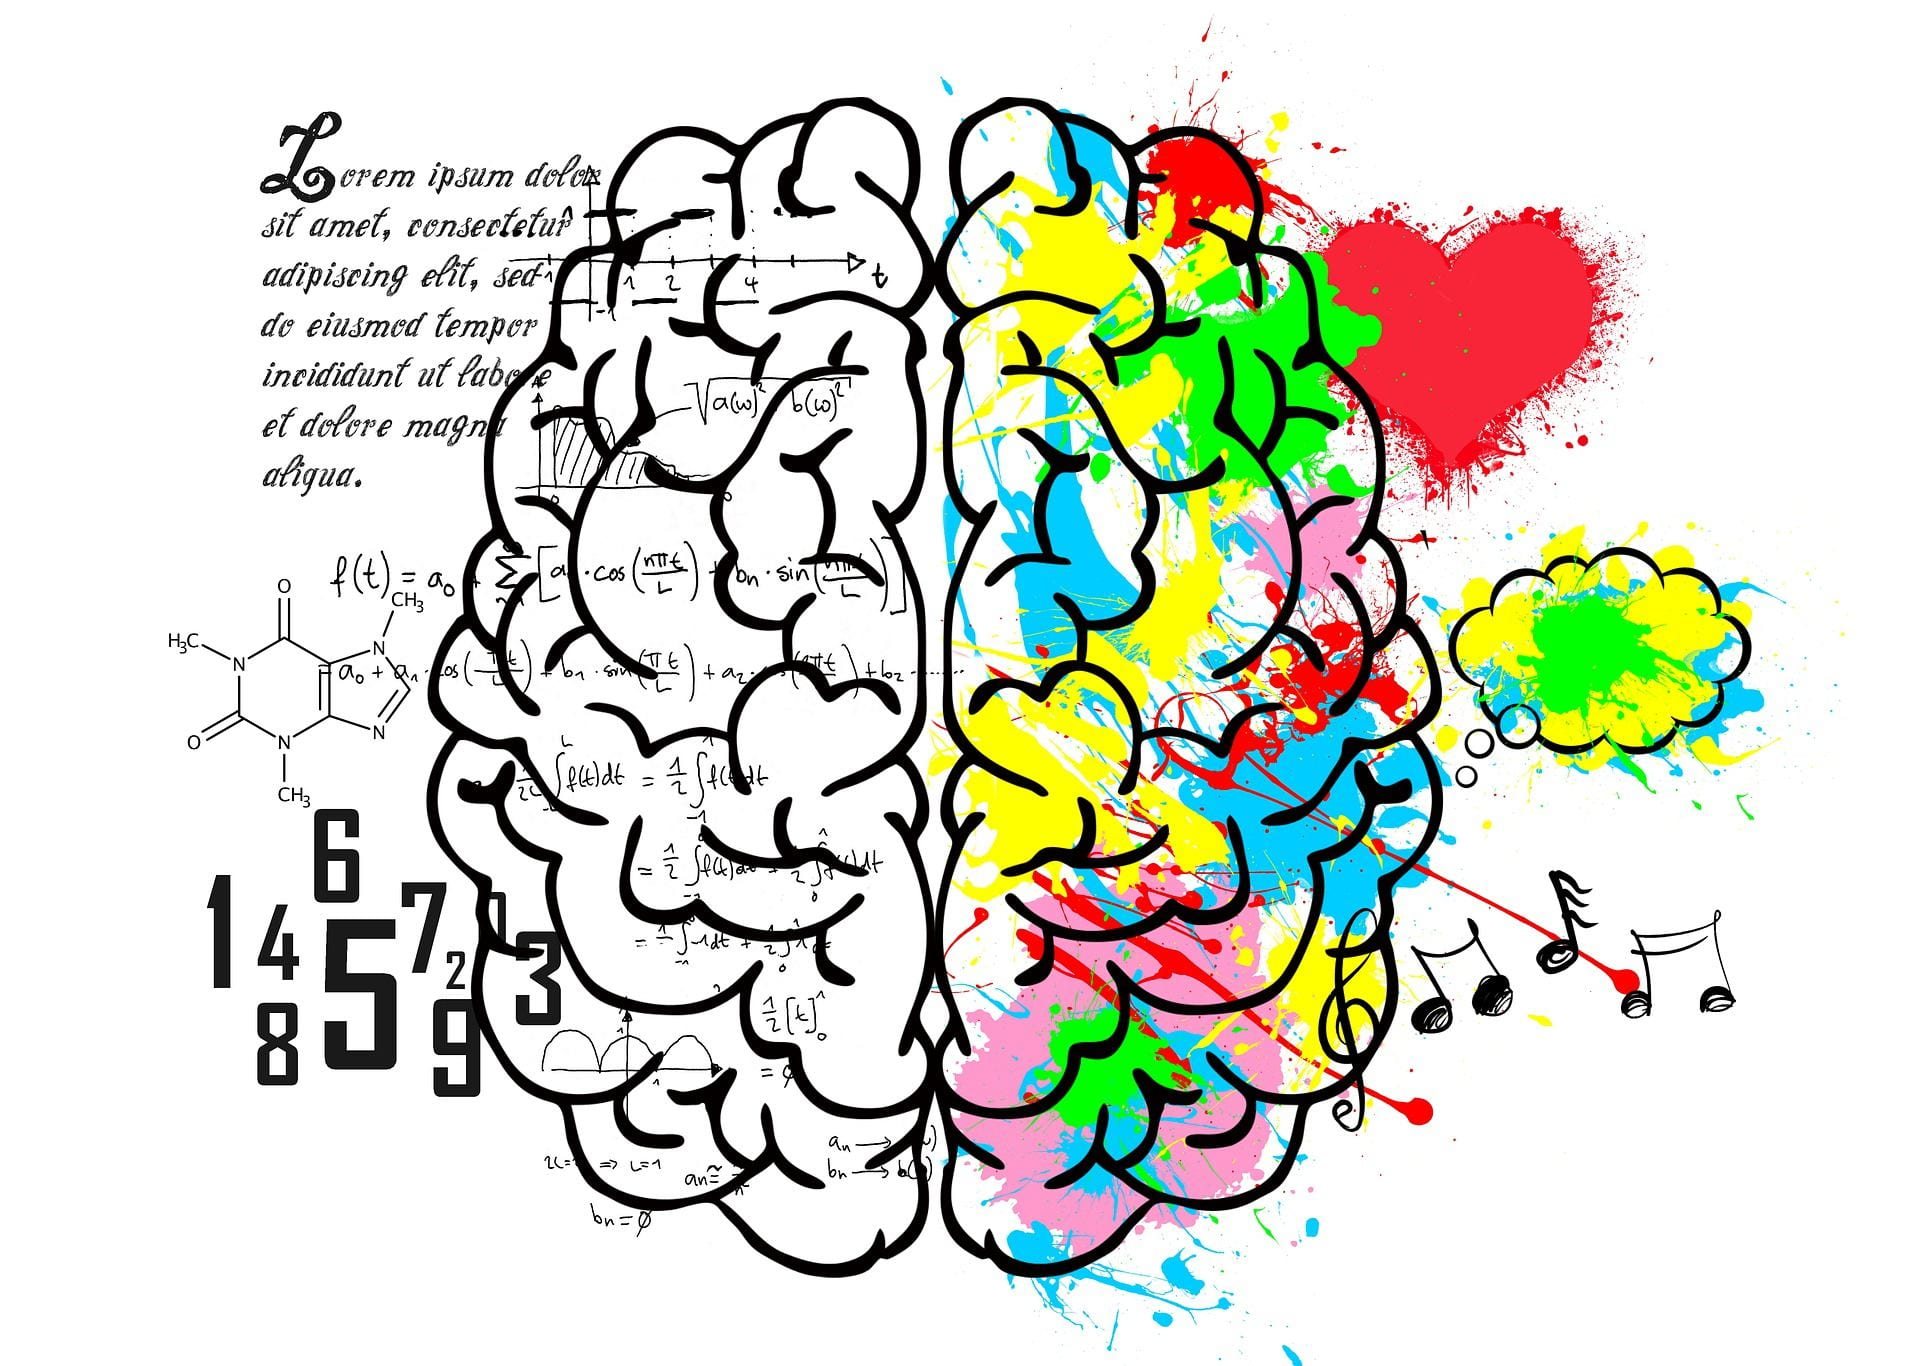 [A cartoon of the brain, with pictures of a heart, a thought bubble, music notes, numbers, a molecule, and words.]